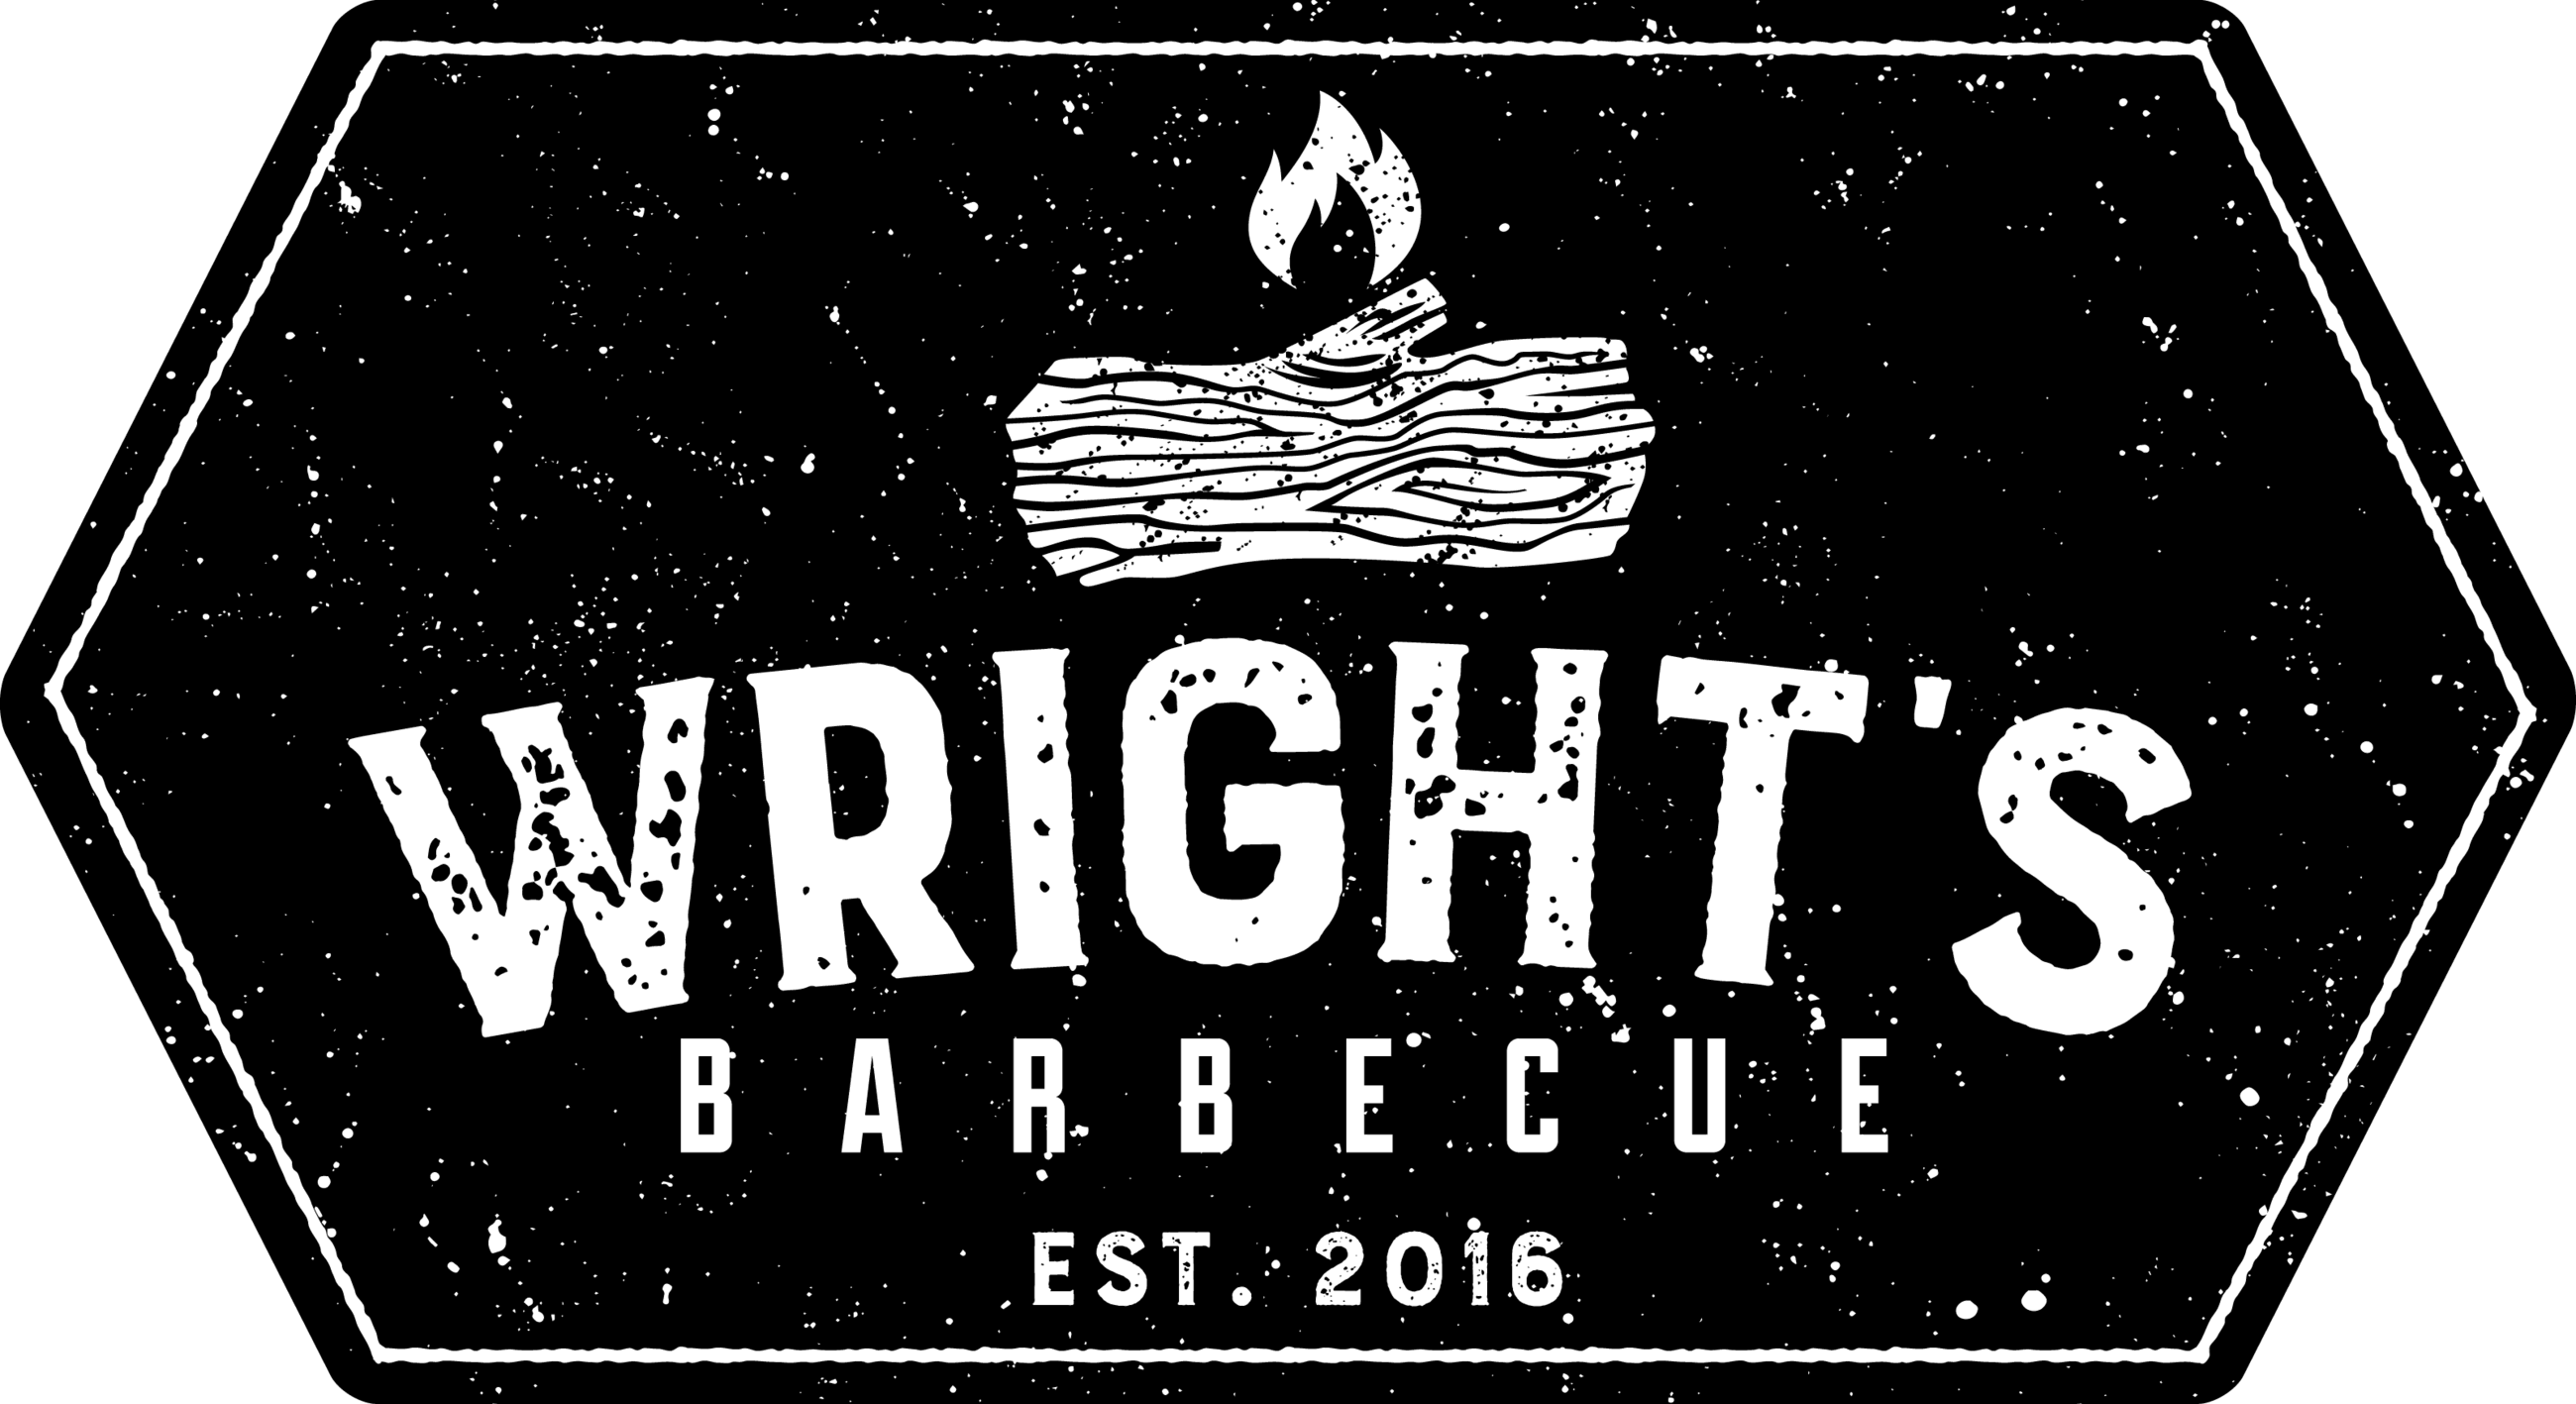 WrightsBarbecue_singlecolor_black